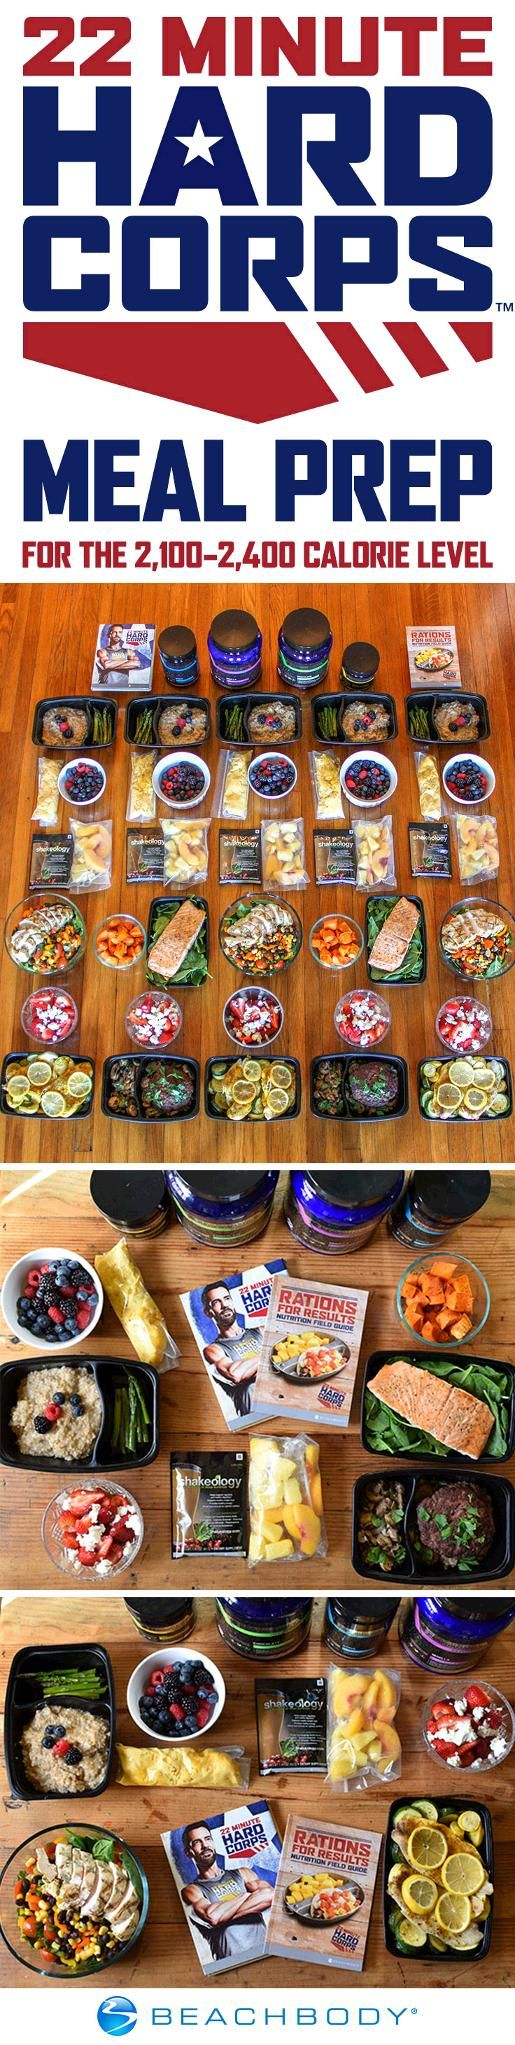 Prep yourself for a successful week with 22 Minute Hard Corps and this meal prep plan to go along with it! This meal prep menu fits into the 2,100–2,400 calorie range, and although it's geared toward 22 Minute Hard Corps, it can work for almost any program. // Beachbody // BeachbodyBlog.com